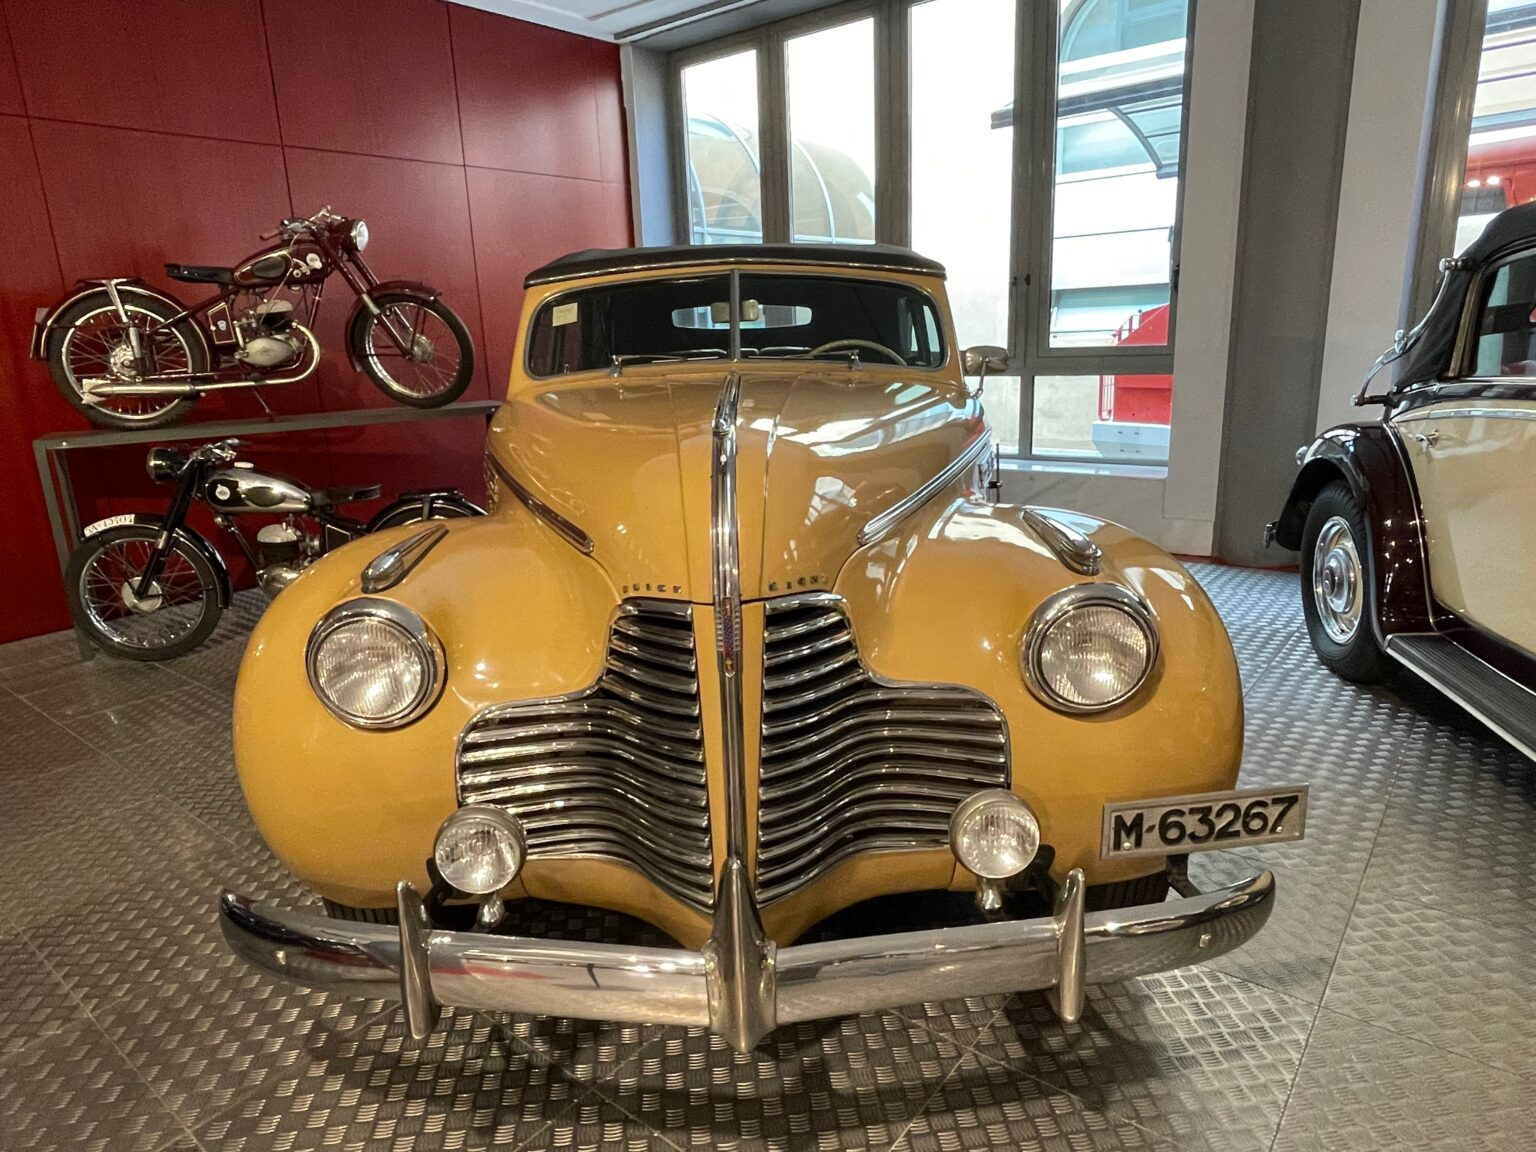 A museum filled with antique cars in Salamanca, Spain was one of the sites we enjoyed.